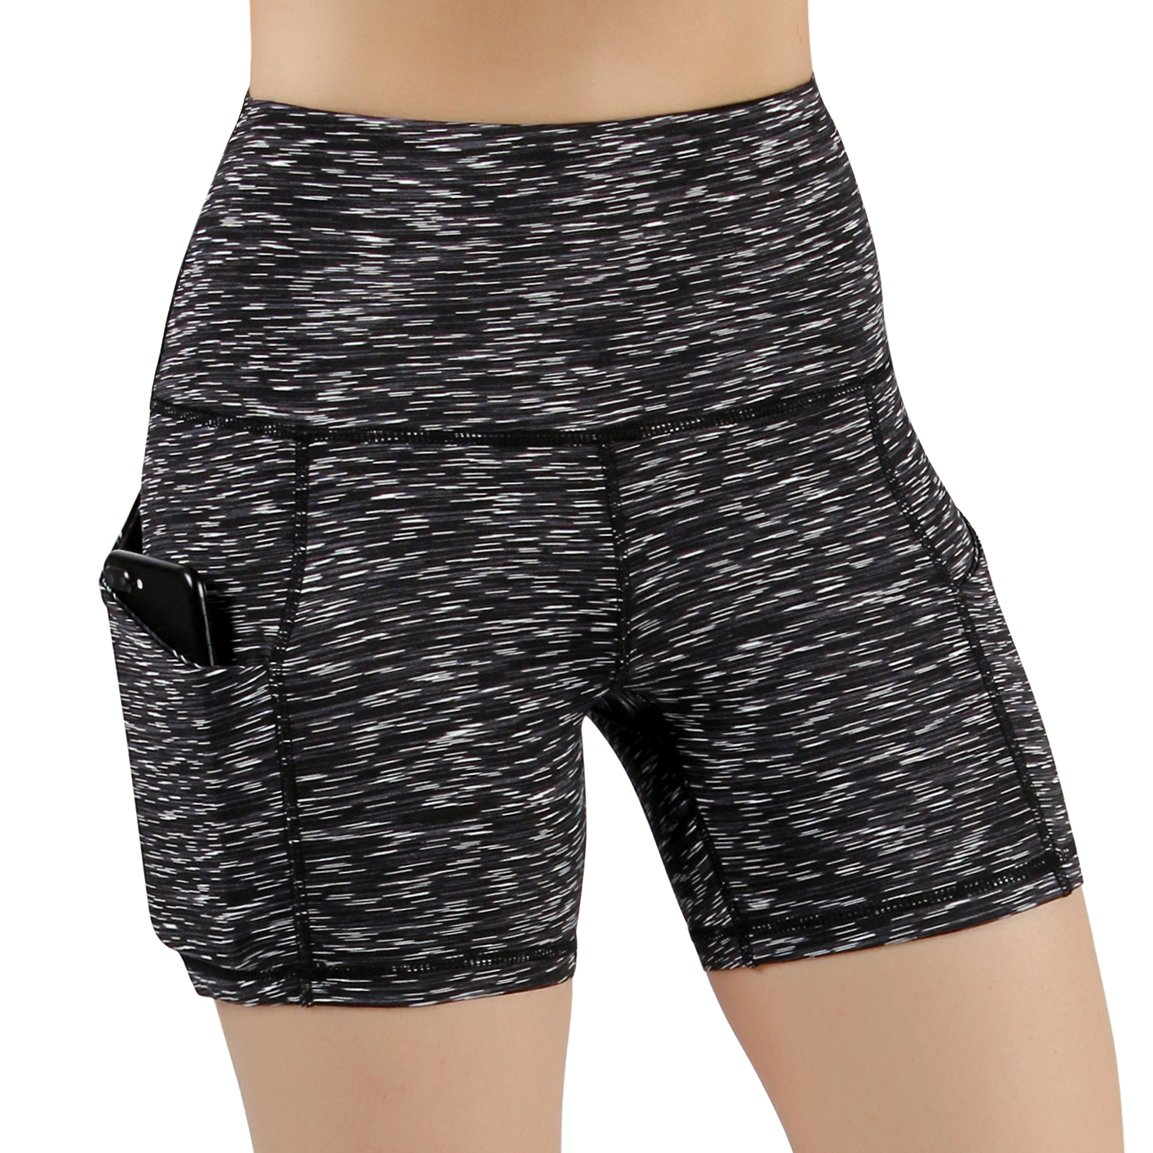 ODODOS High Waist Out Pocket Yoga Short Tummy Control Workout Running Athletic Non See-Through Yoga Shorts,SpaceDyeMattBlack,Large by ODODOS